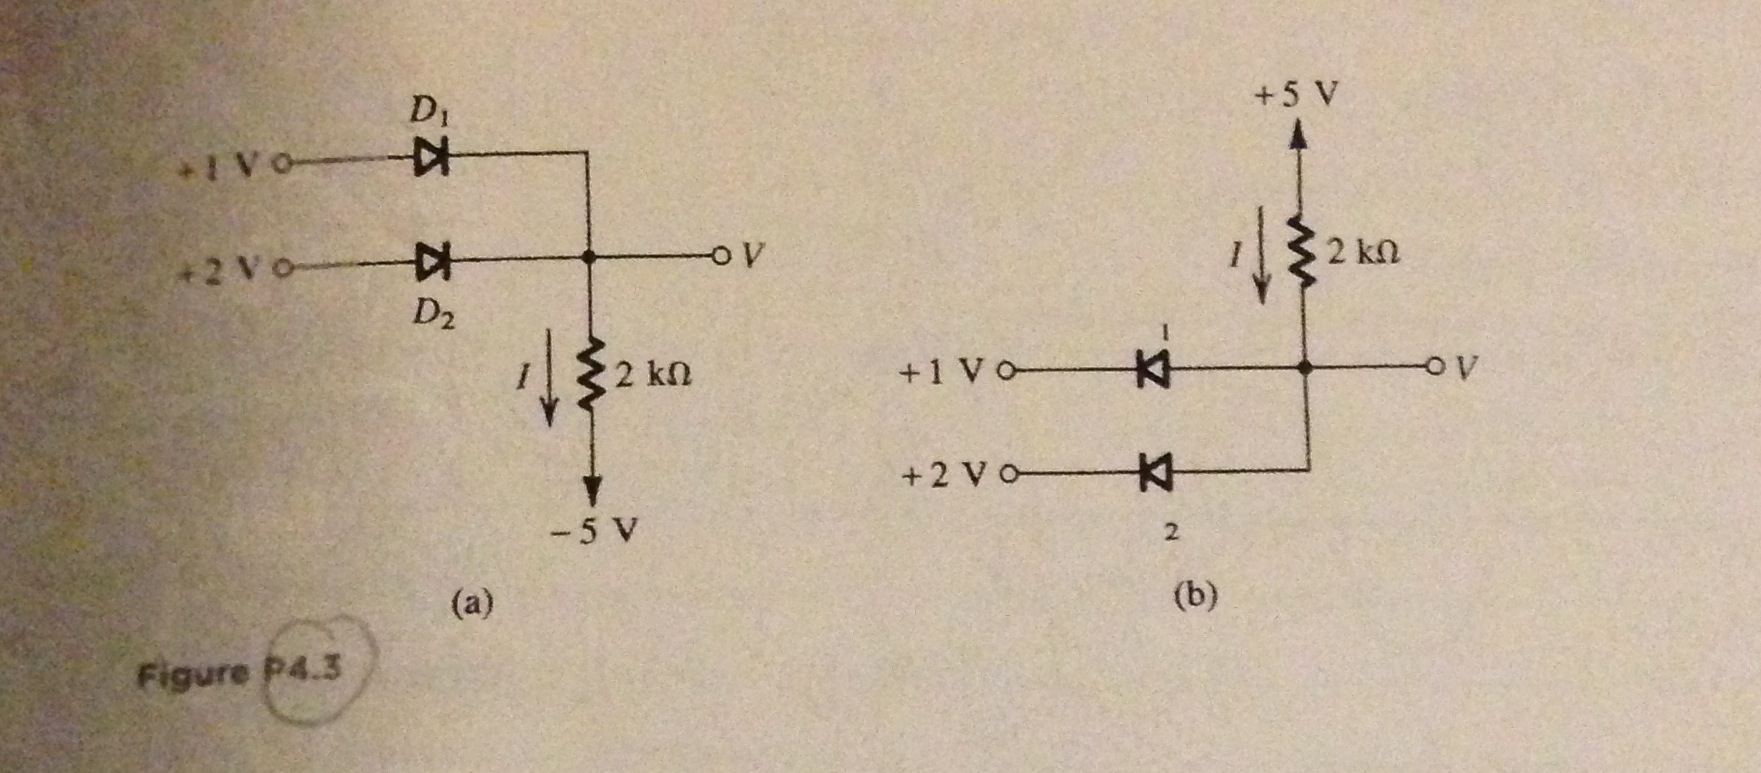 Solved Figure P43 For The Circuits Shown In Figure43 Diagram Complete Wiring Of Circuit Is Below Using Ideal Di